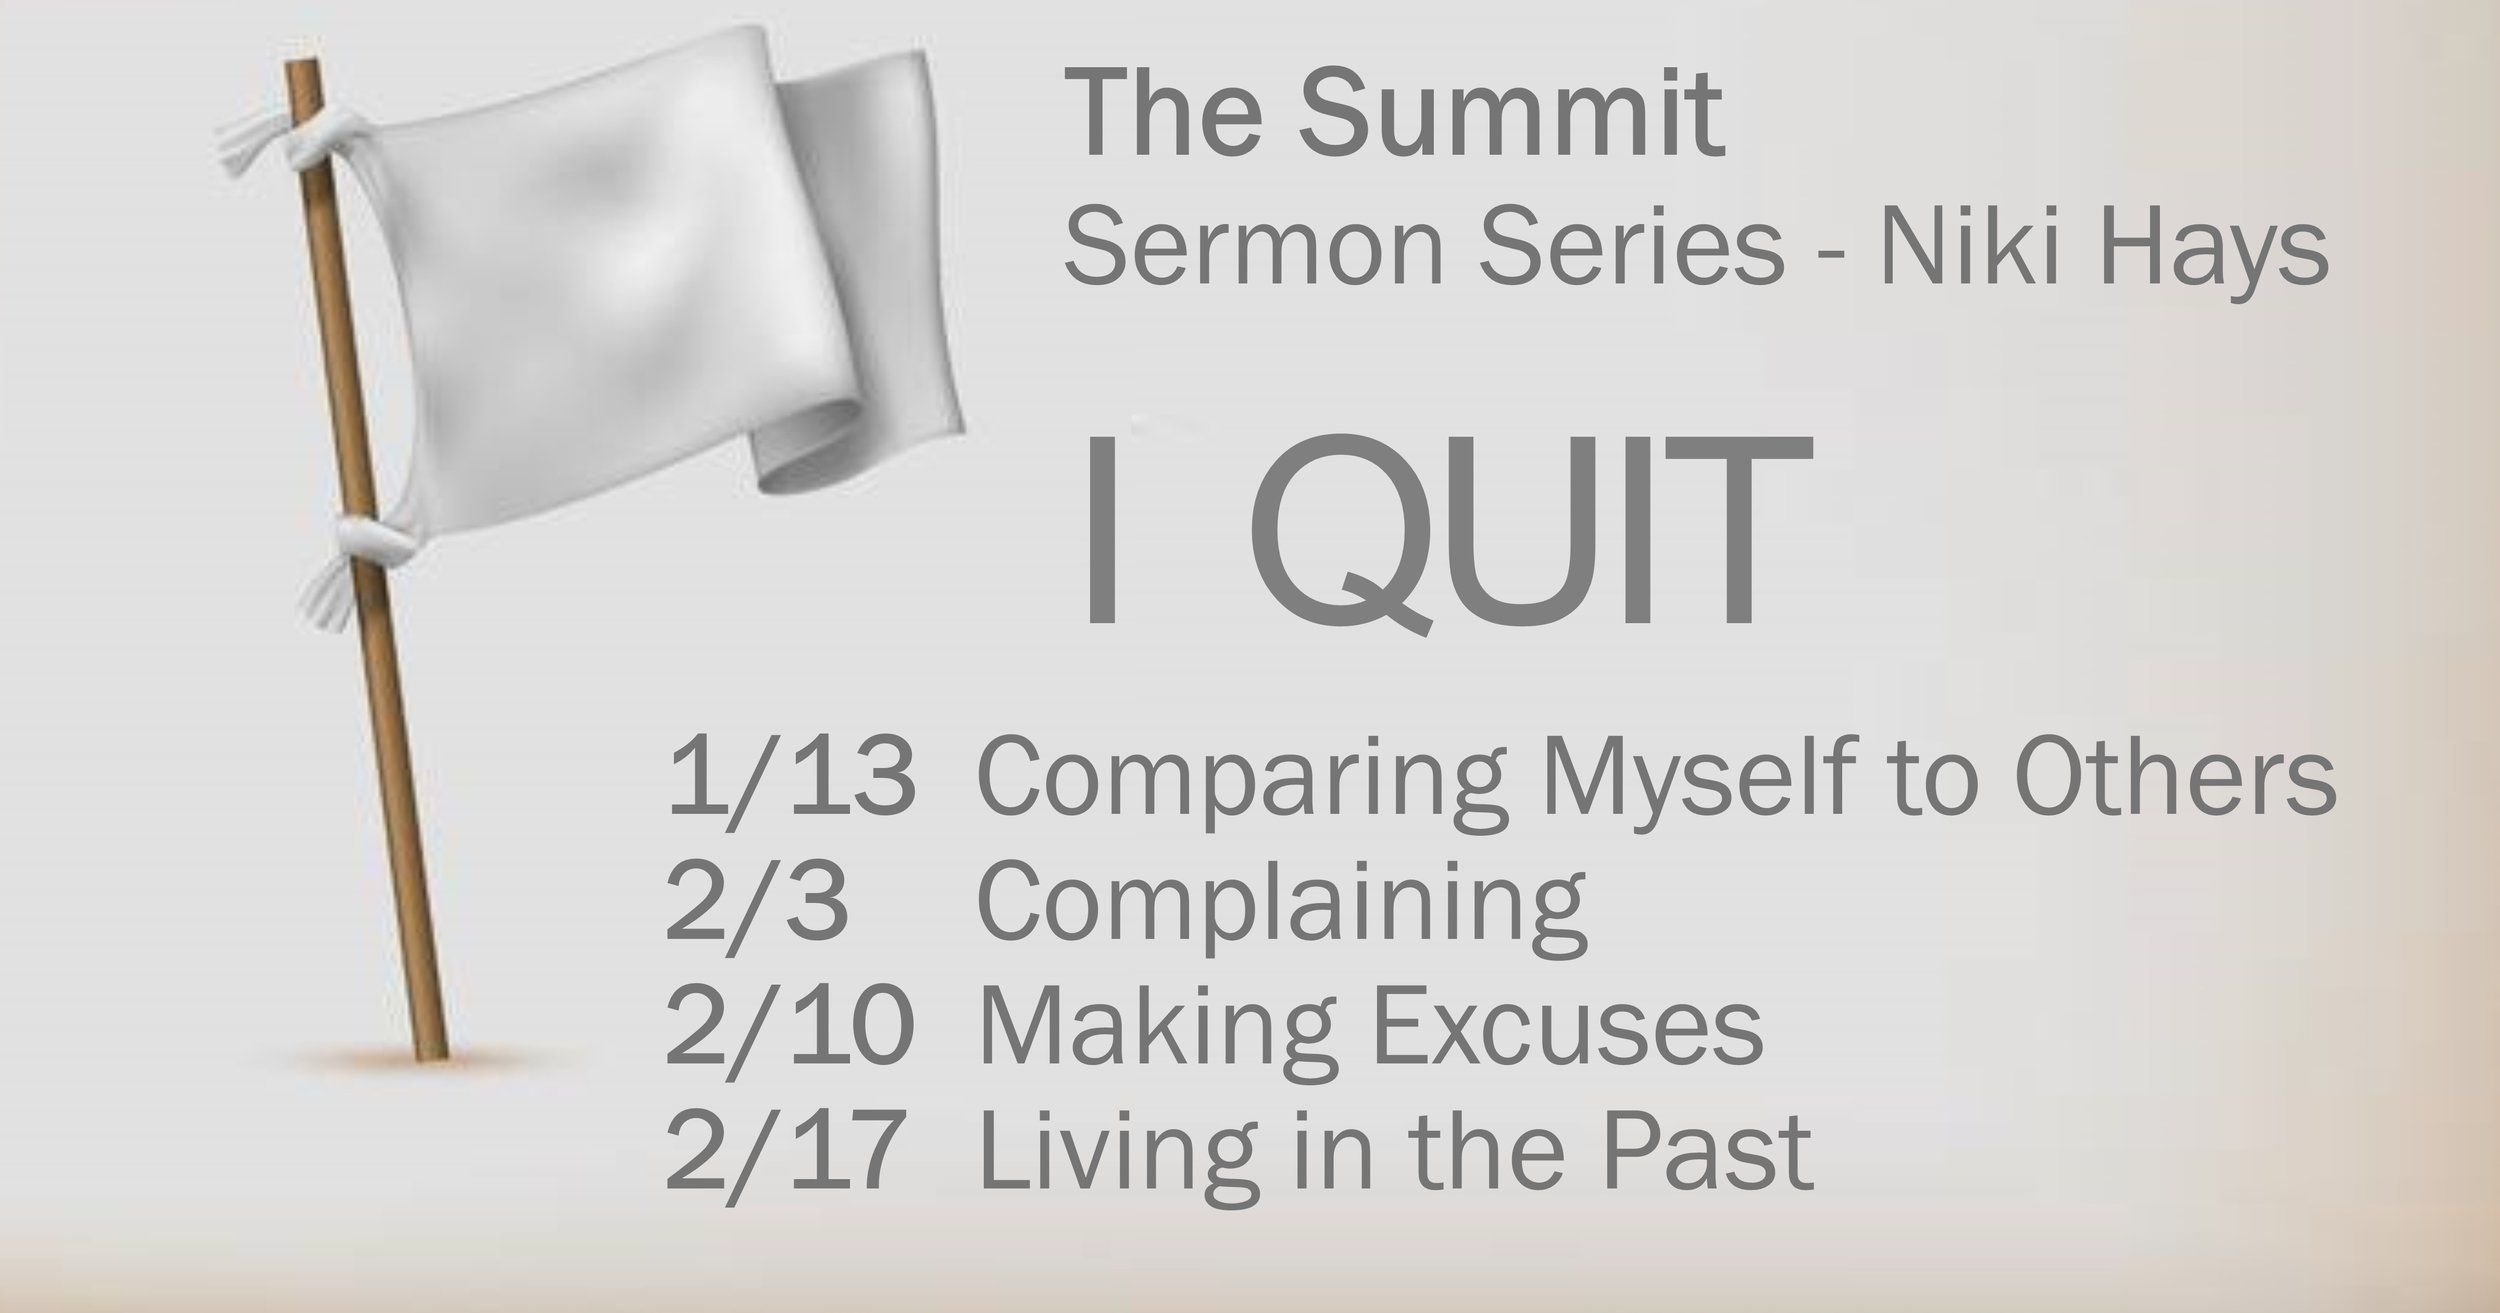 Summit I Quit Sermon Facebook Link 012219.jpg